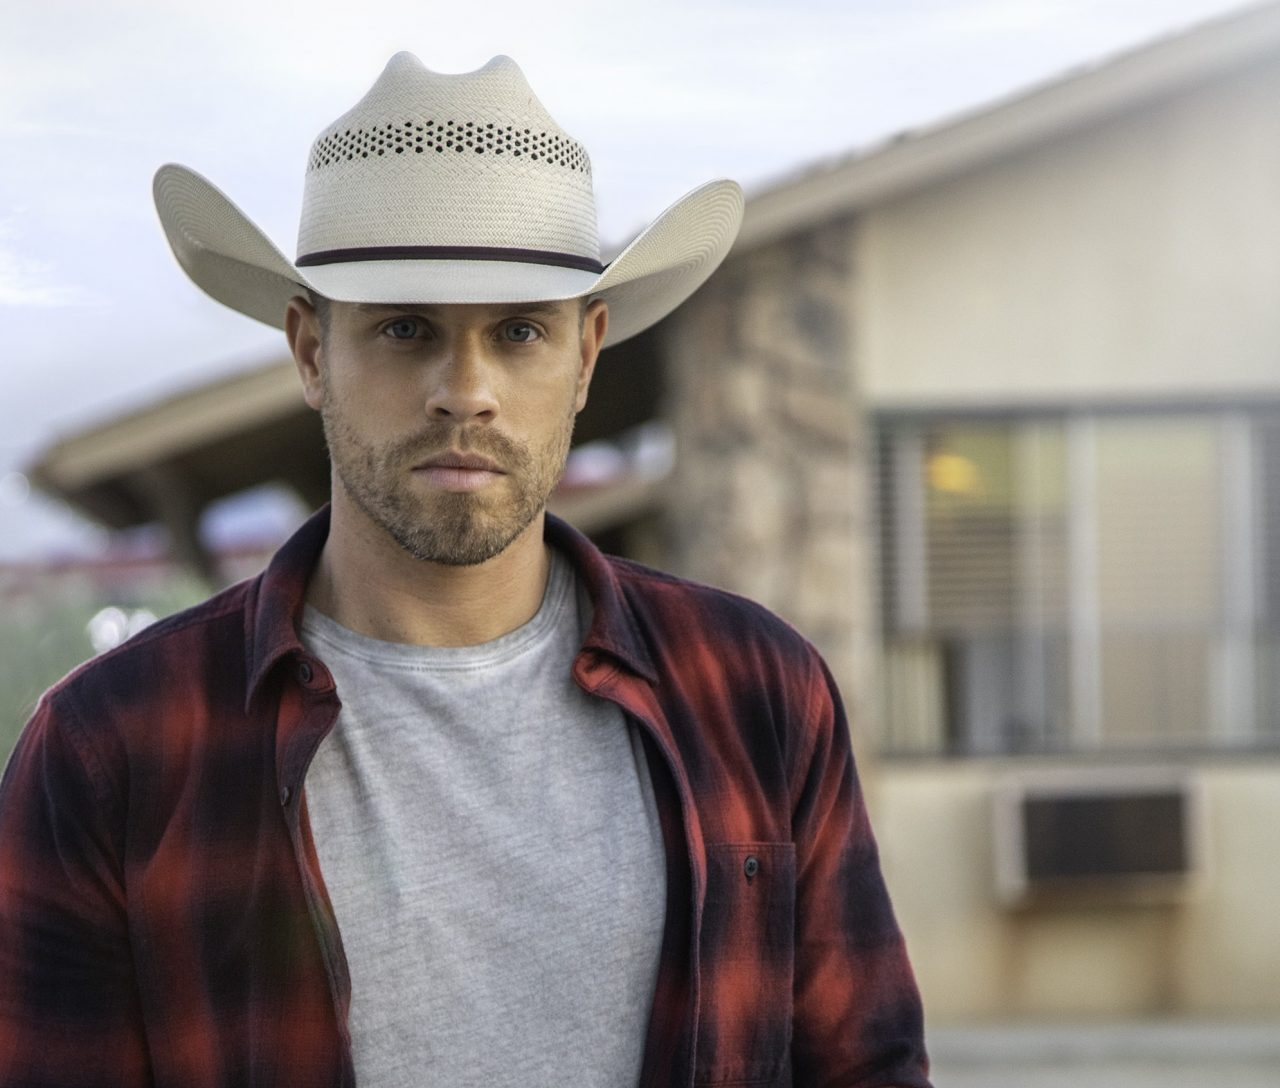 Dustin Lynch's 'Good Girl' Lands at No.1 on Country Radio